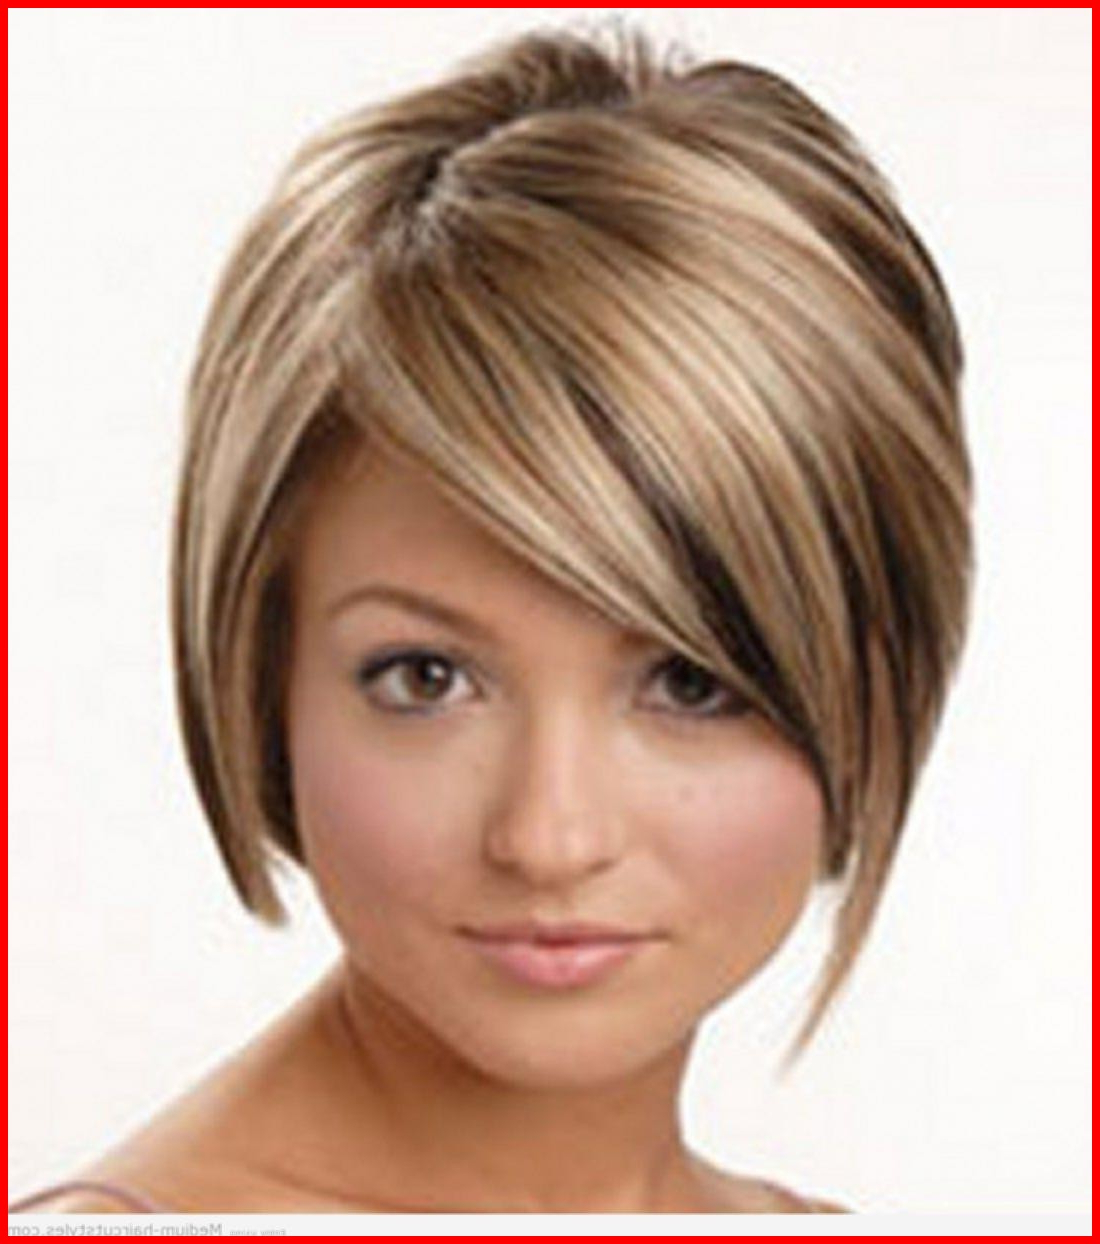 Girls Short Haircuts 22381 Haircuts For Girls With Medium Hair Short With Teenage Girl Short Haircuts (View 13 of 25)